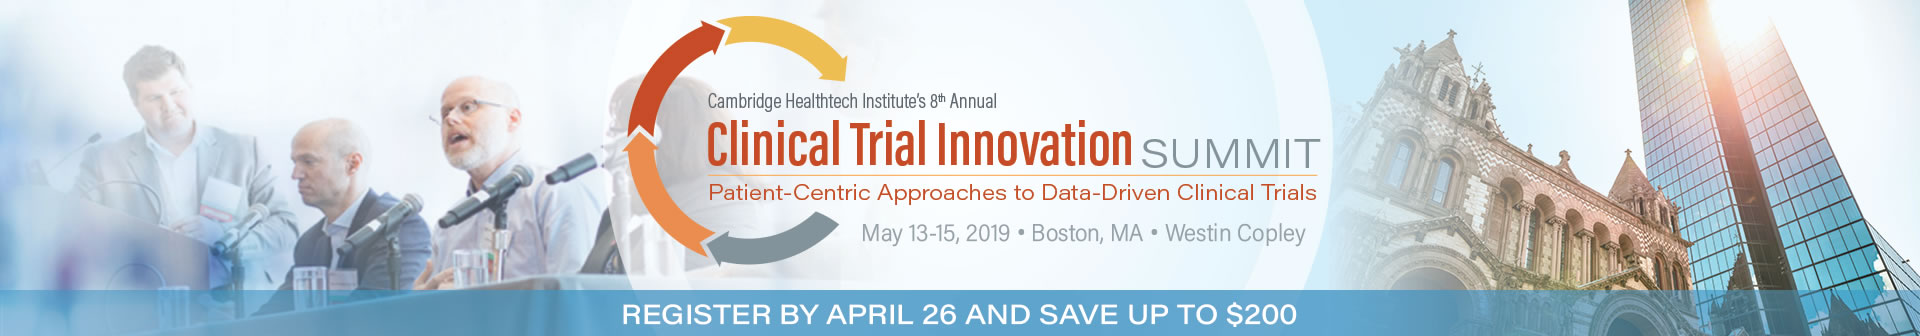 Clinical Trial Innovation Summit_4-26-19